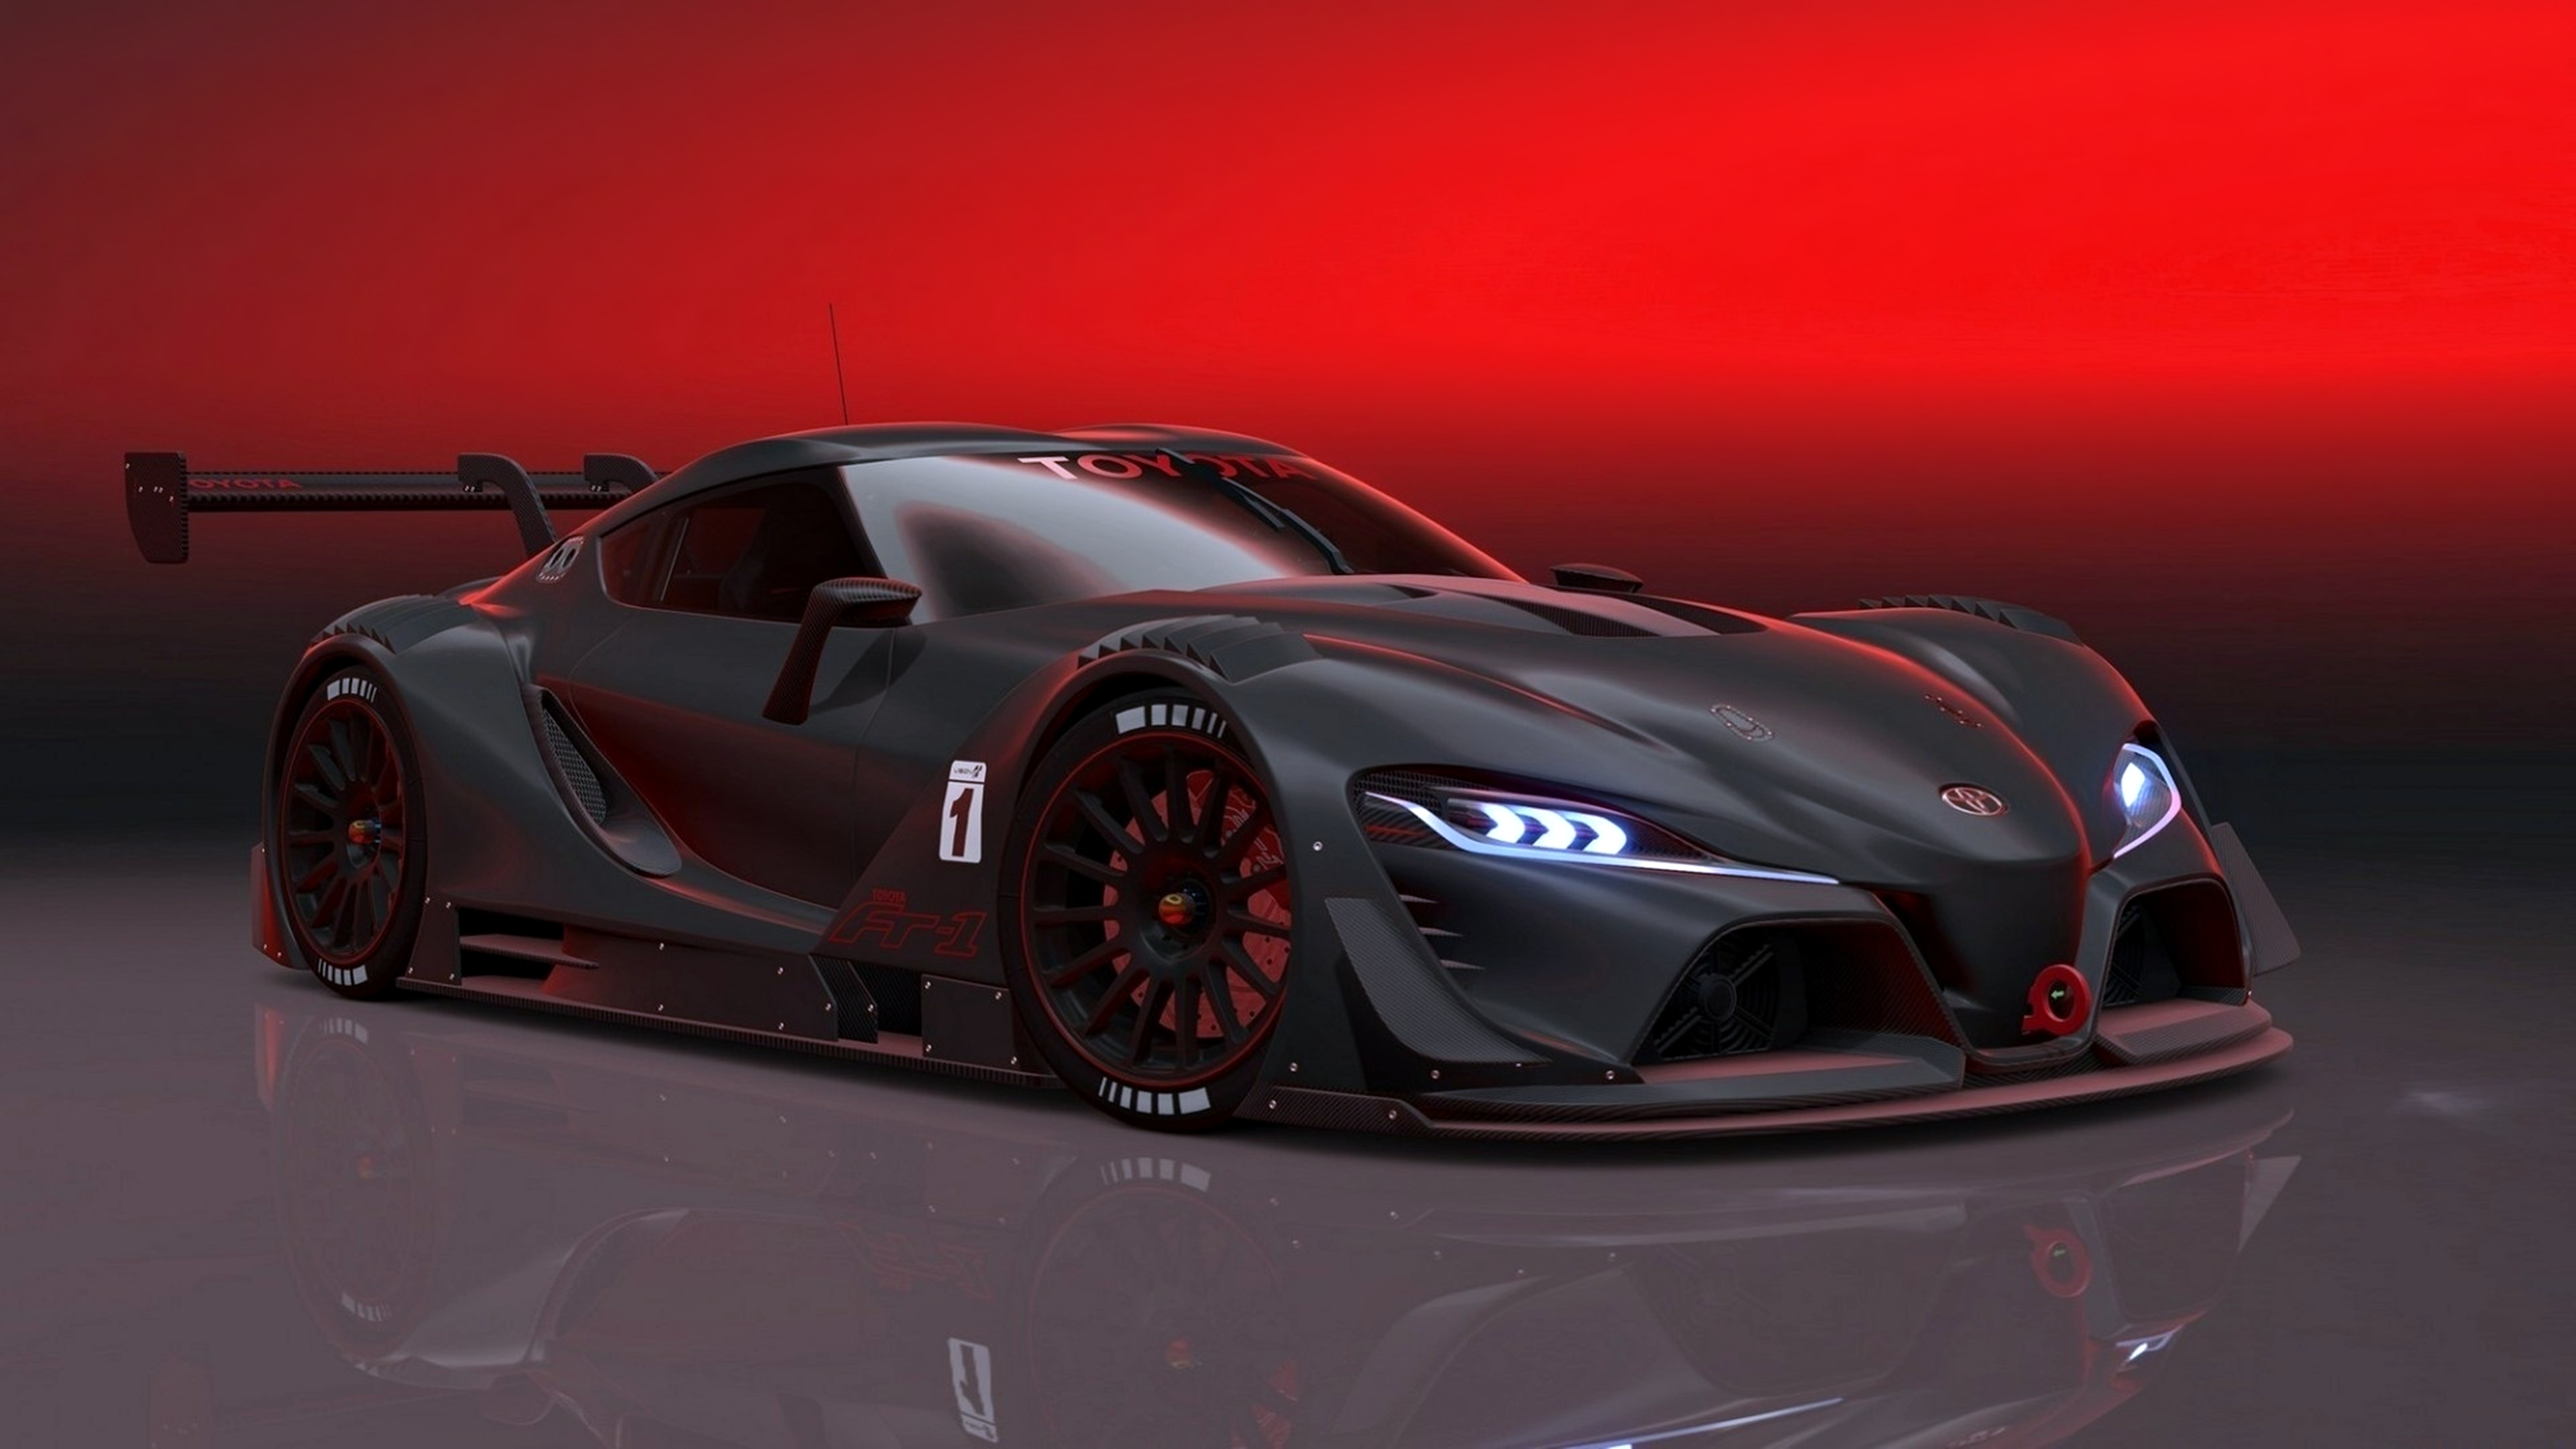 Hd Wallpaper - Toyota Ft 1 Vision Gt , HD Wallpaper & Backgrounds